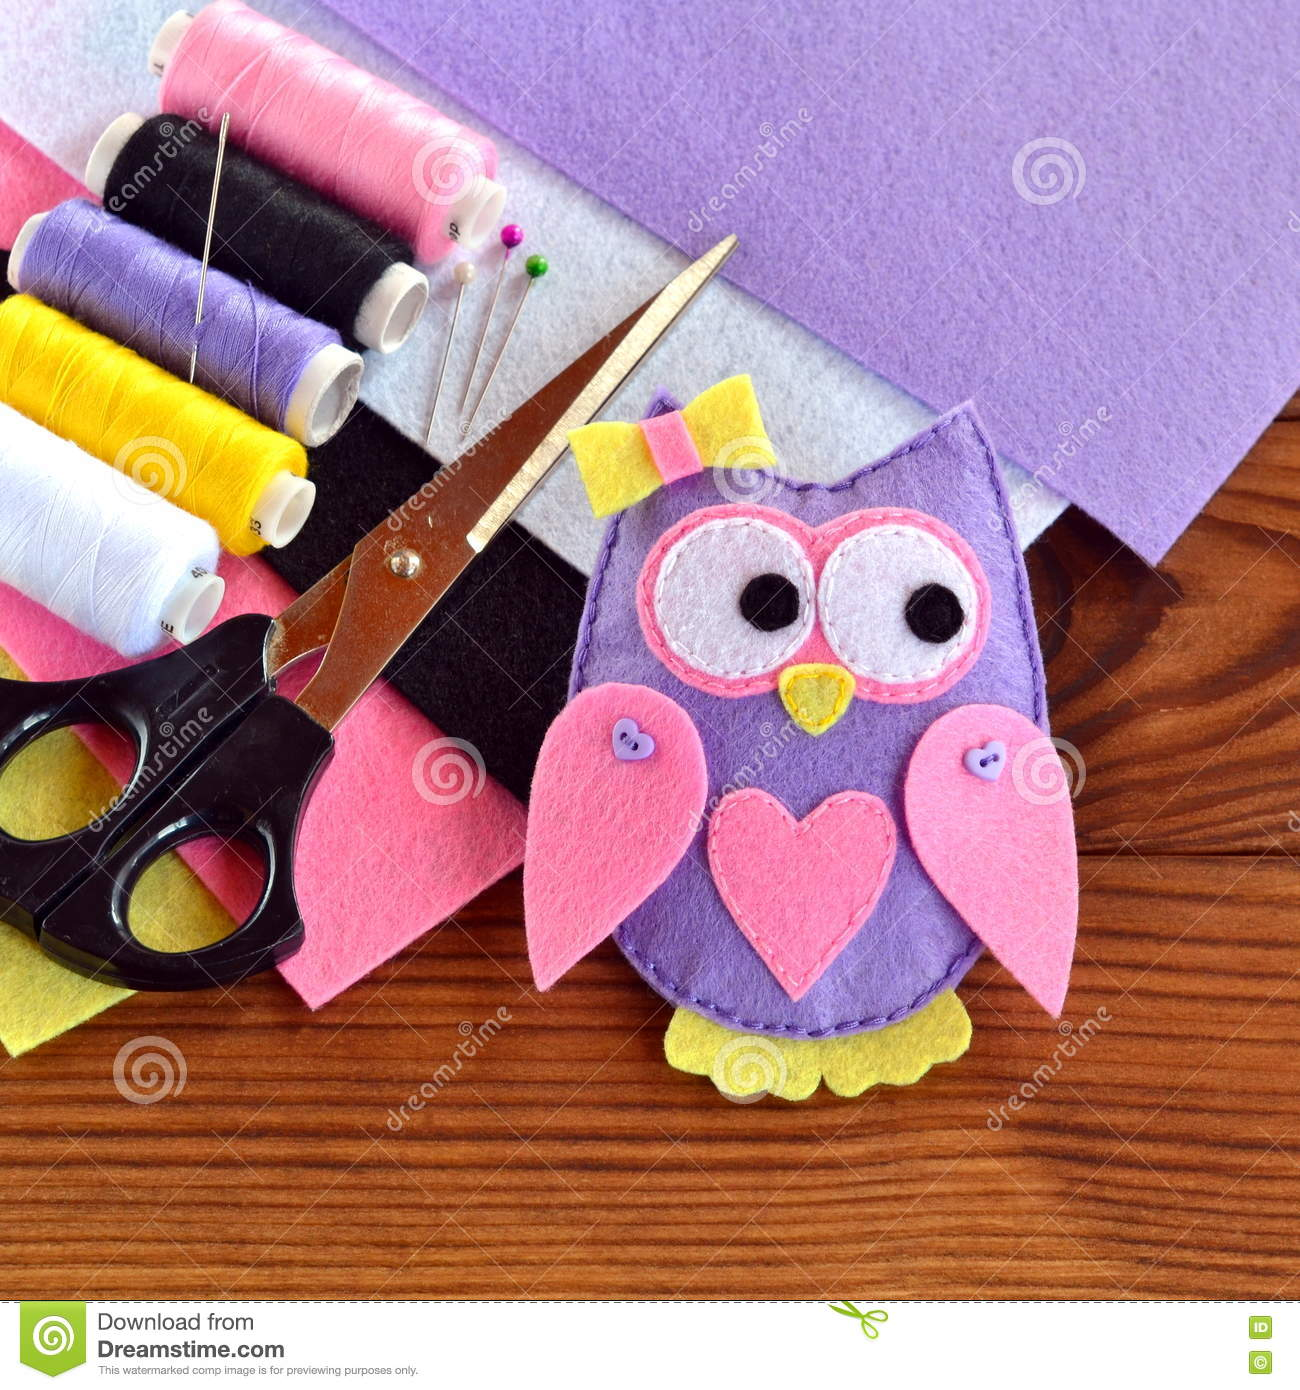 Handmade felt owl toy, felt sheets, scissors, thread, pins, needle on a brown wooden background. Sewing concept